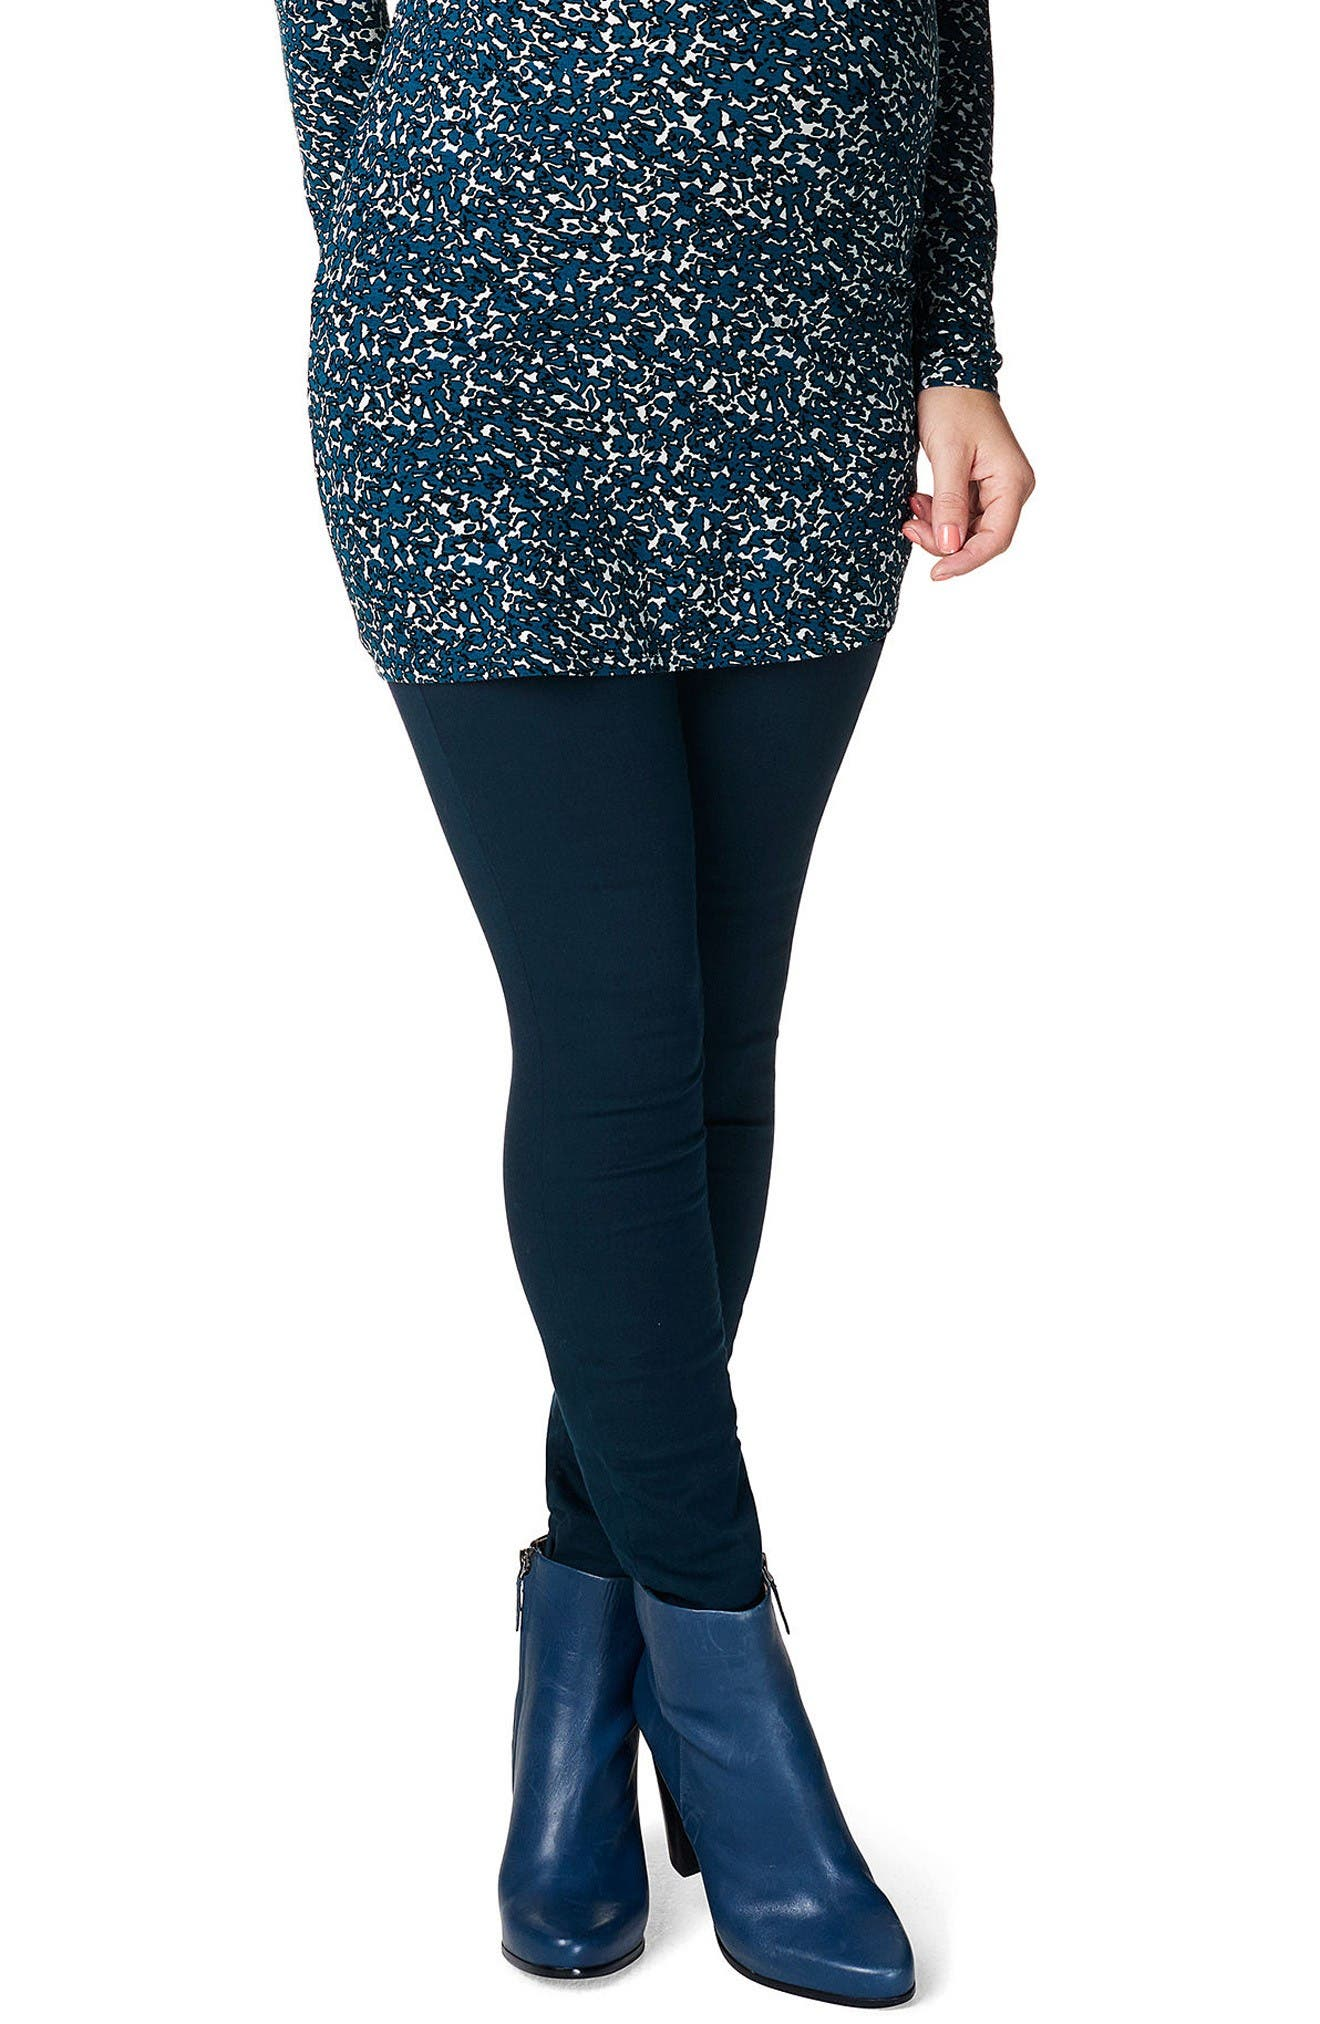 Bailey Over the Belly Slim Maternity Pants,                         Main,                         color, Black